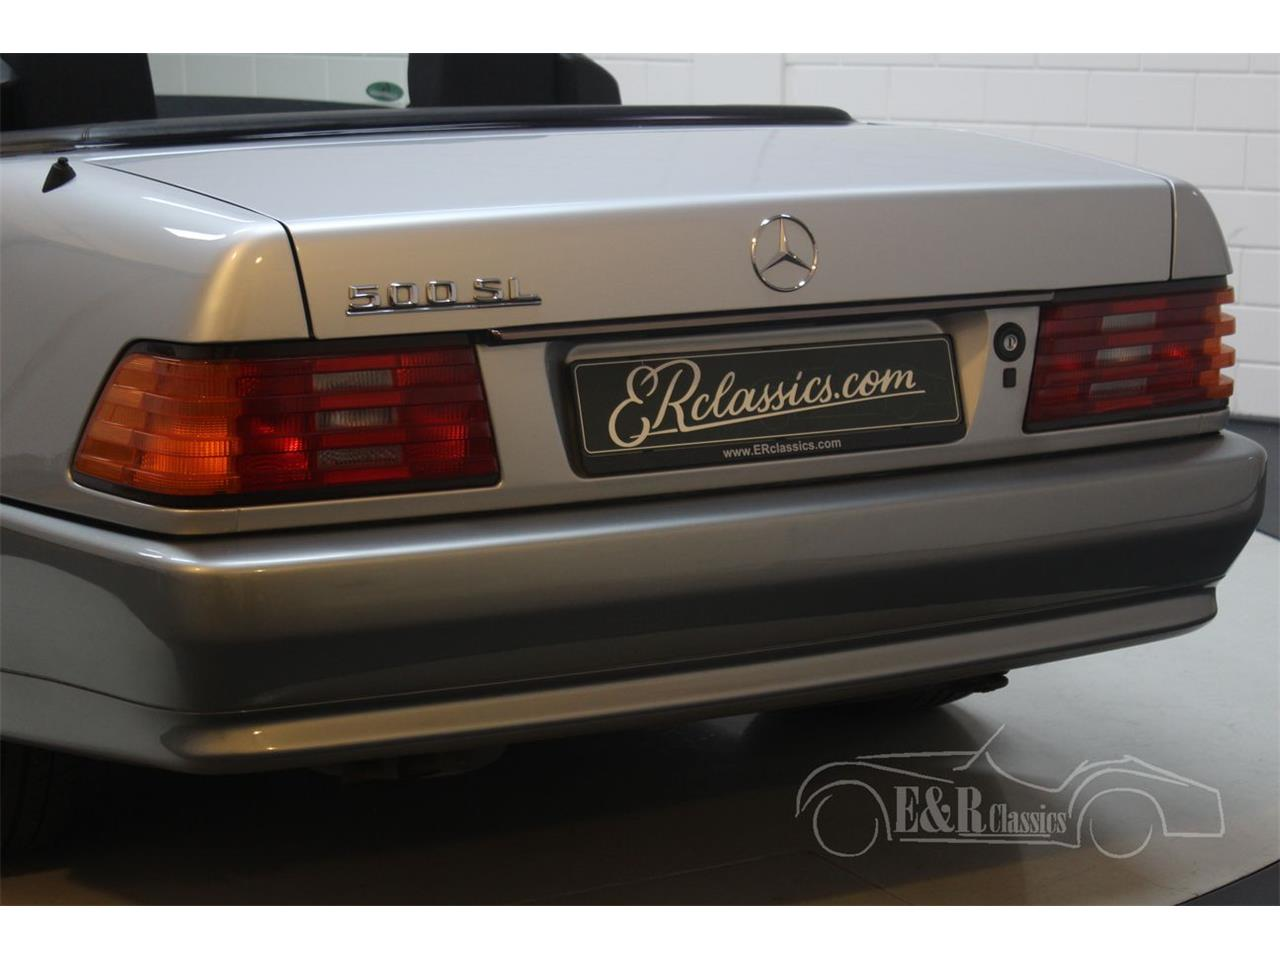 Large Picture of '91 Mercedes-Benz 500SL located in Waalwijk noord brabant - Q33D